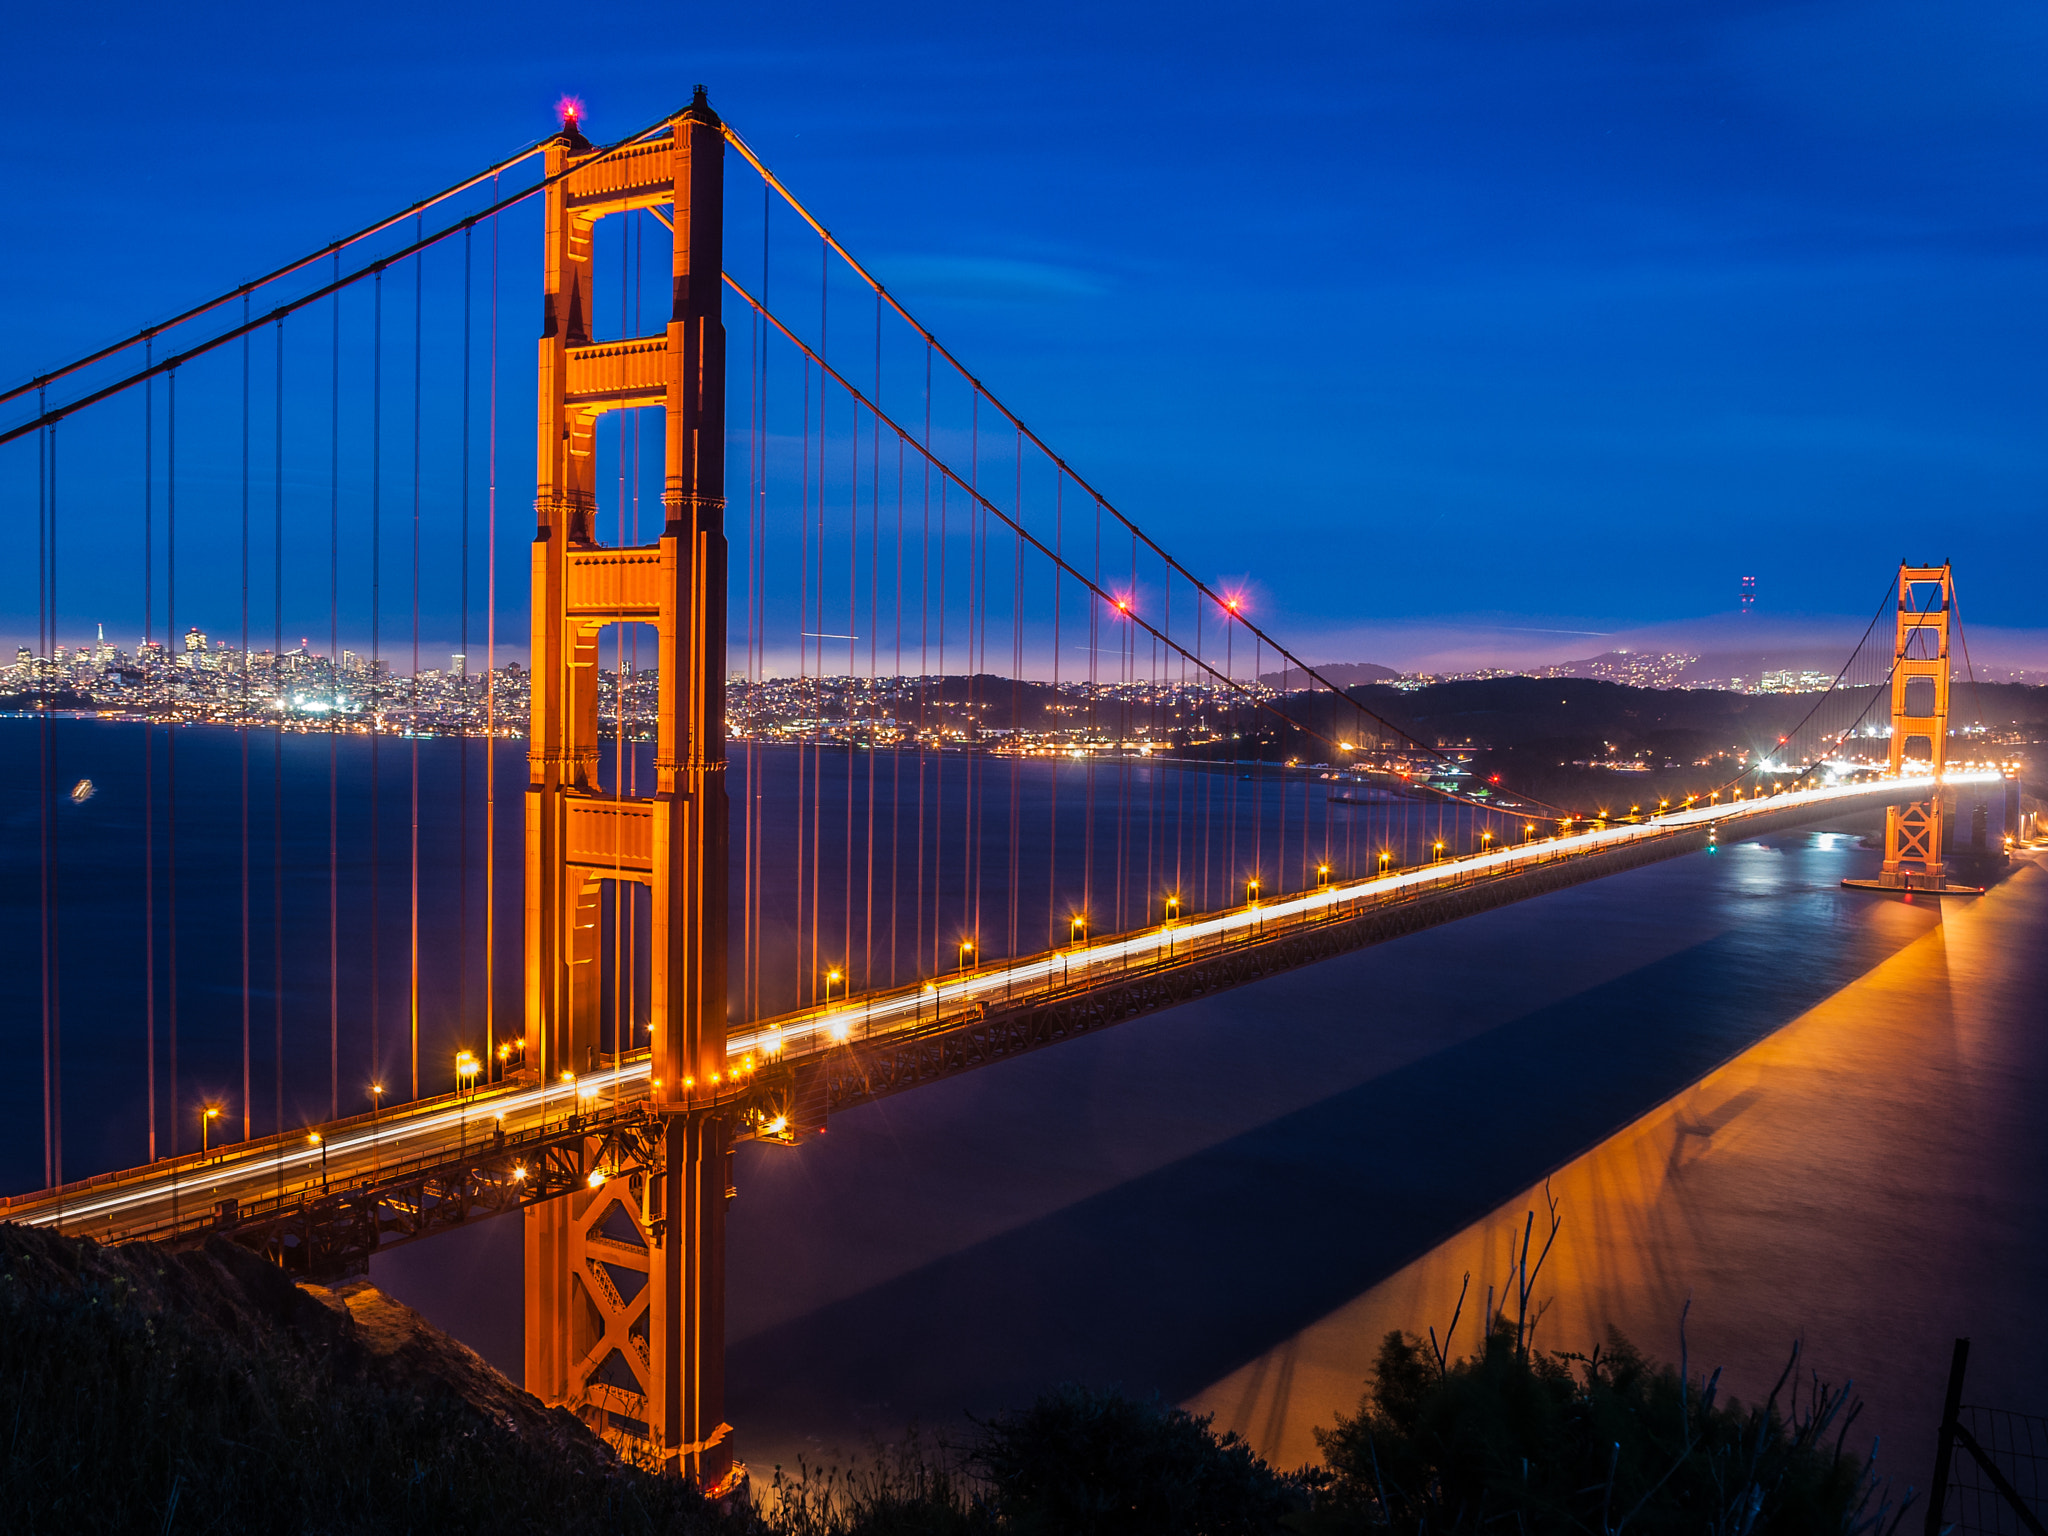 Photograph Golden Gate Bridge Blue Hour by Karsten May on 500px